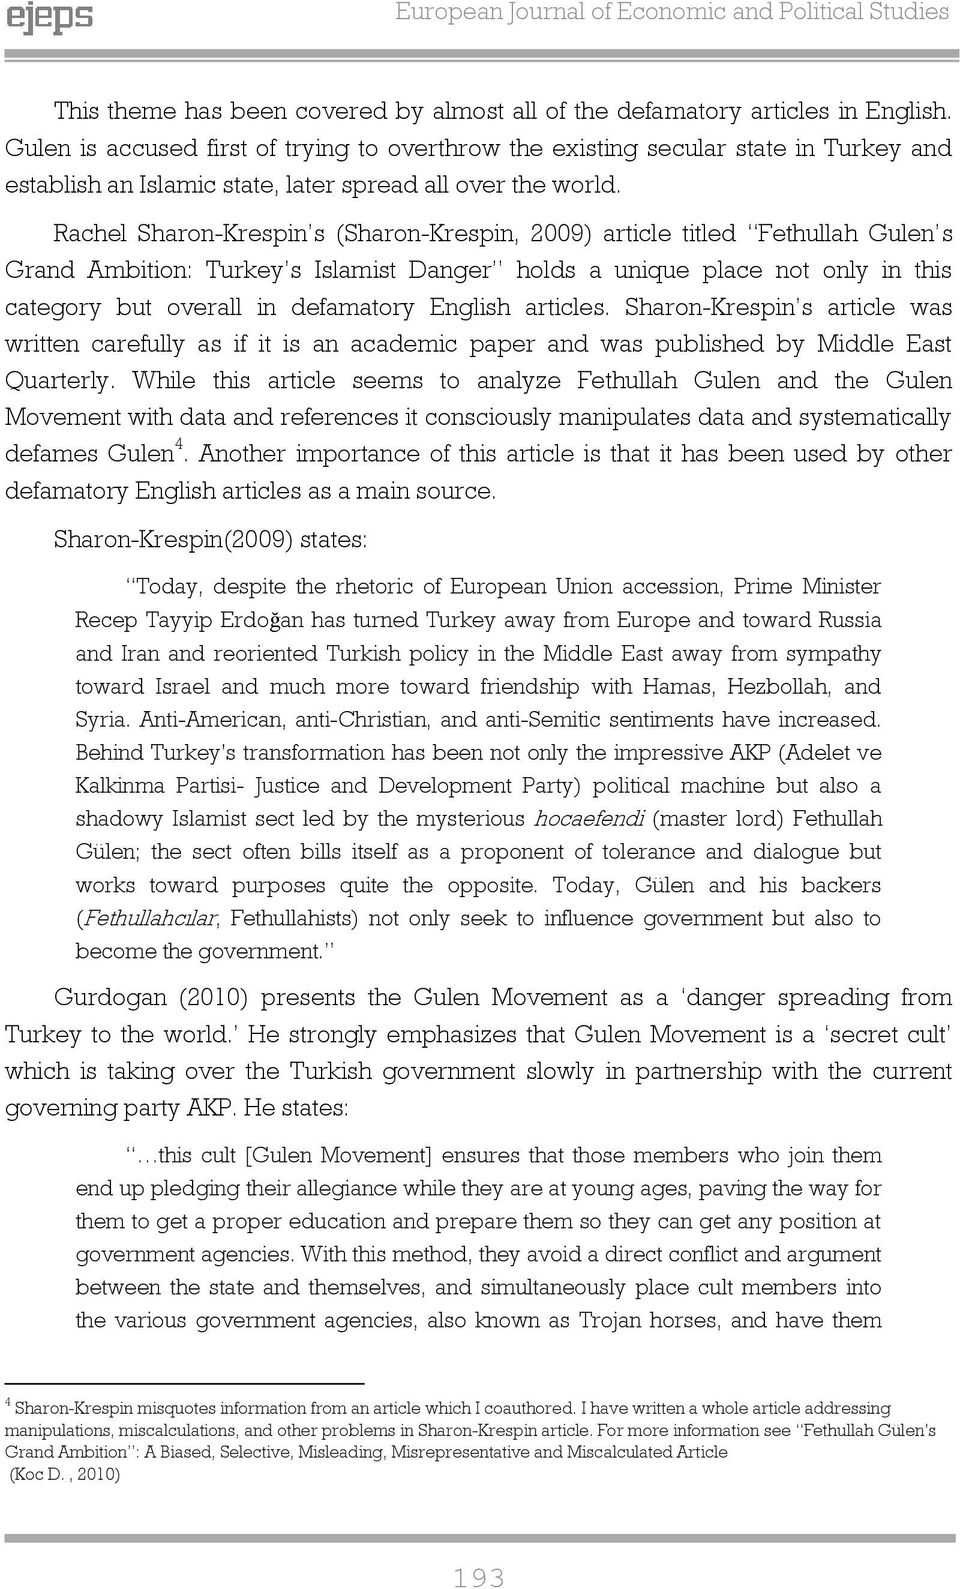 Rachel Sharon-Krespin s (Sharon-Krespin, 2009) article titled Fethullah Gulen s Grand Ambition: Turkey s Islamist Daner holds a unique place not only in this cateory but overall in defamatory Enlish